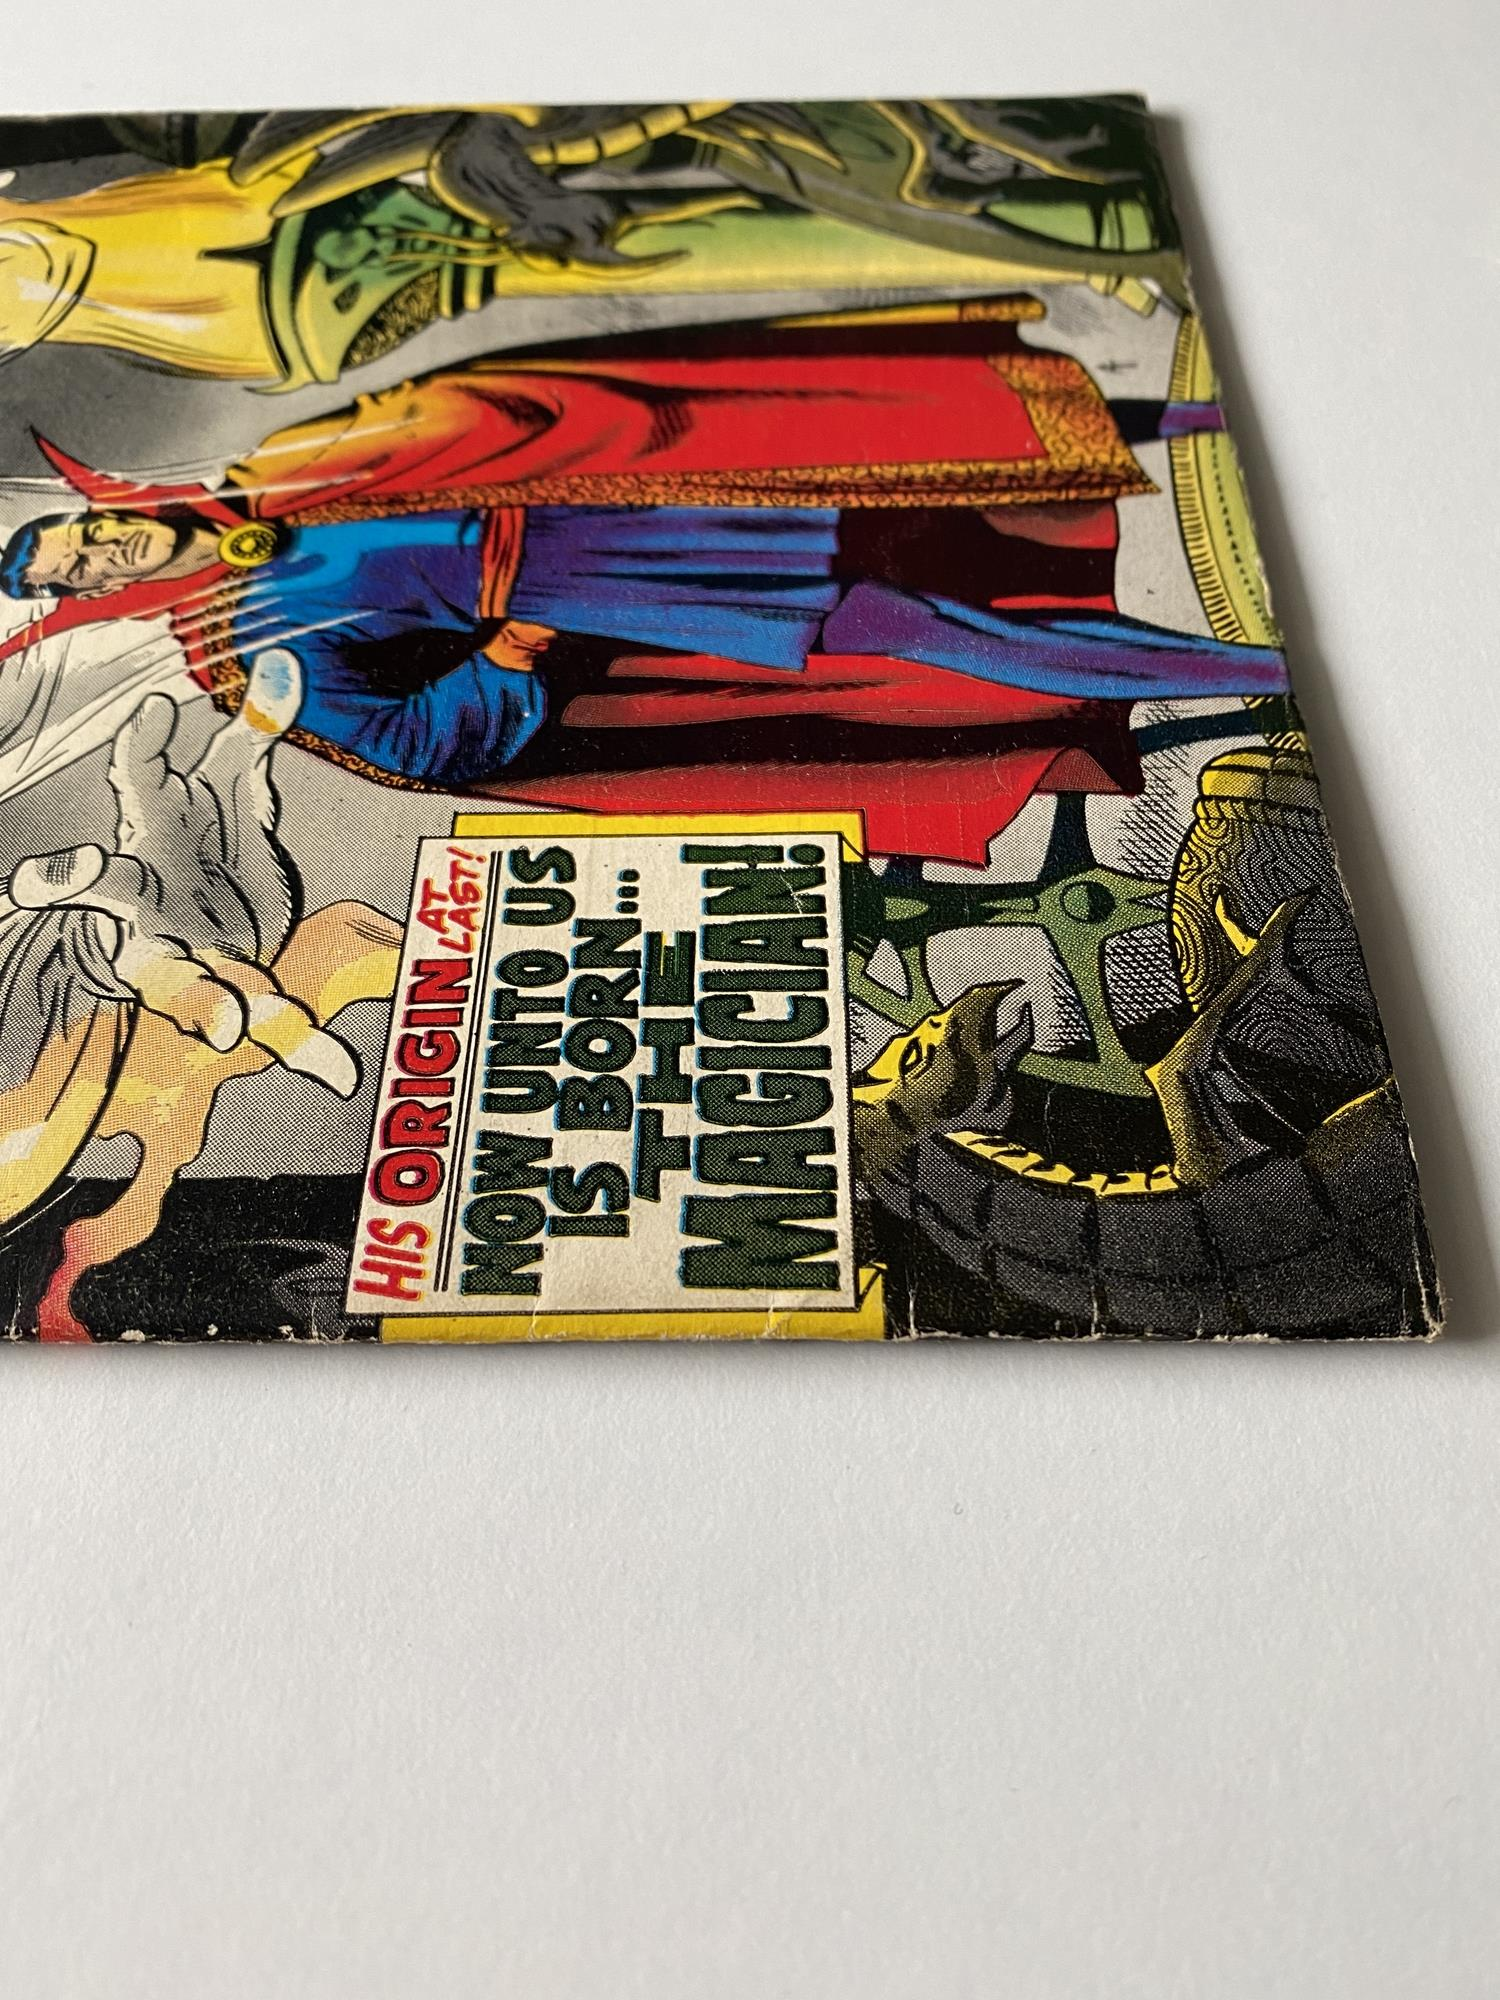 Lot 1 - DOCTOR STRANGE #169 - (1968 - MARVEL - Cents Copy with Pence Stamp) - Debut issue of Doctor